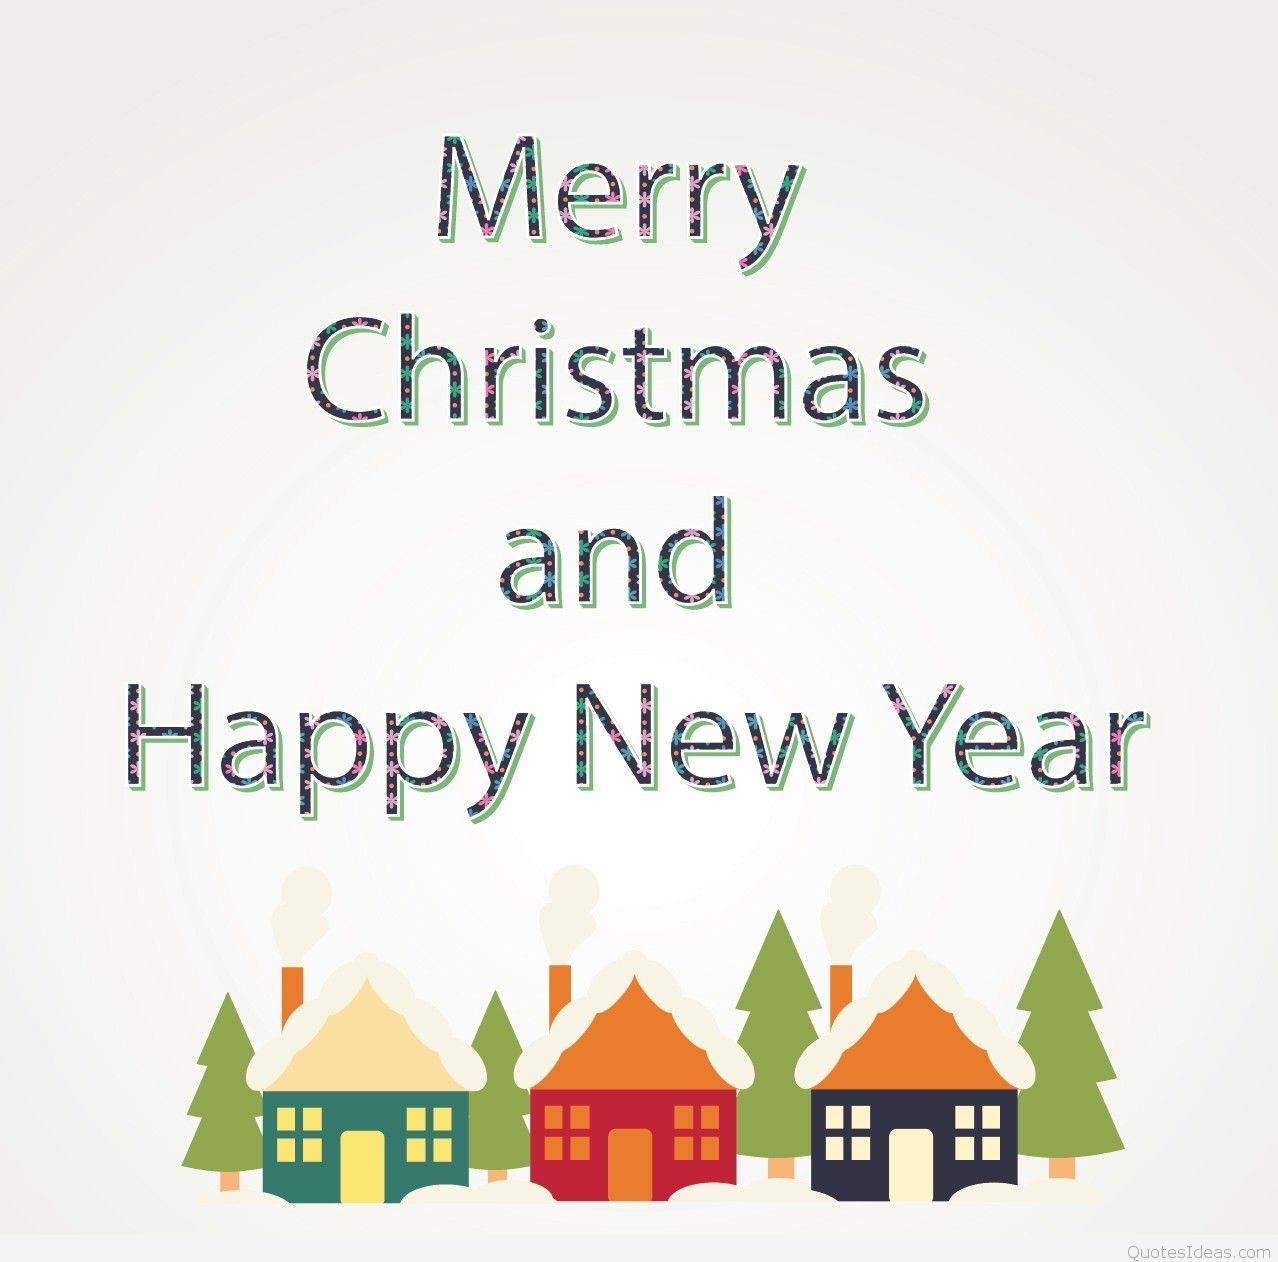 Merry Christmas and Happy new year 2016.